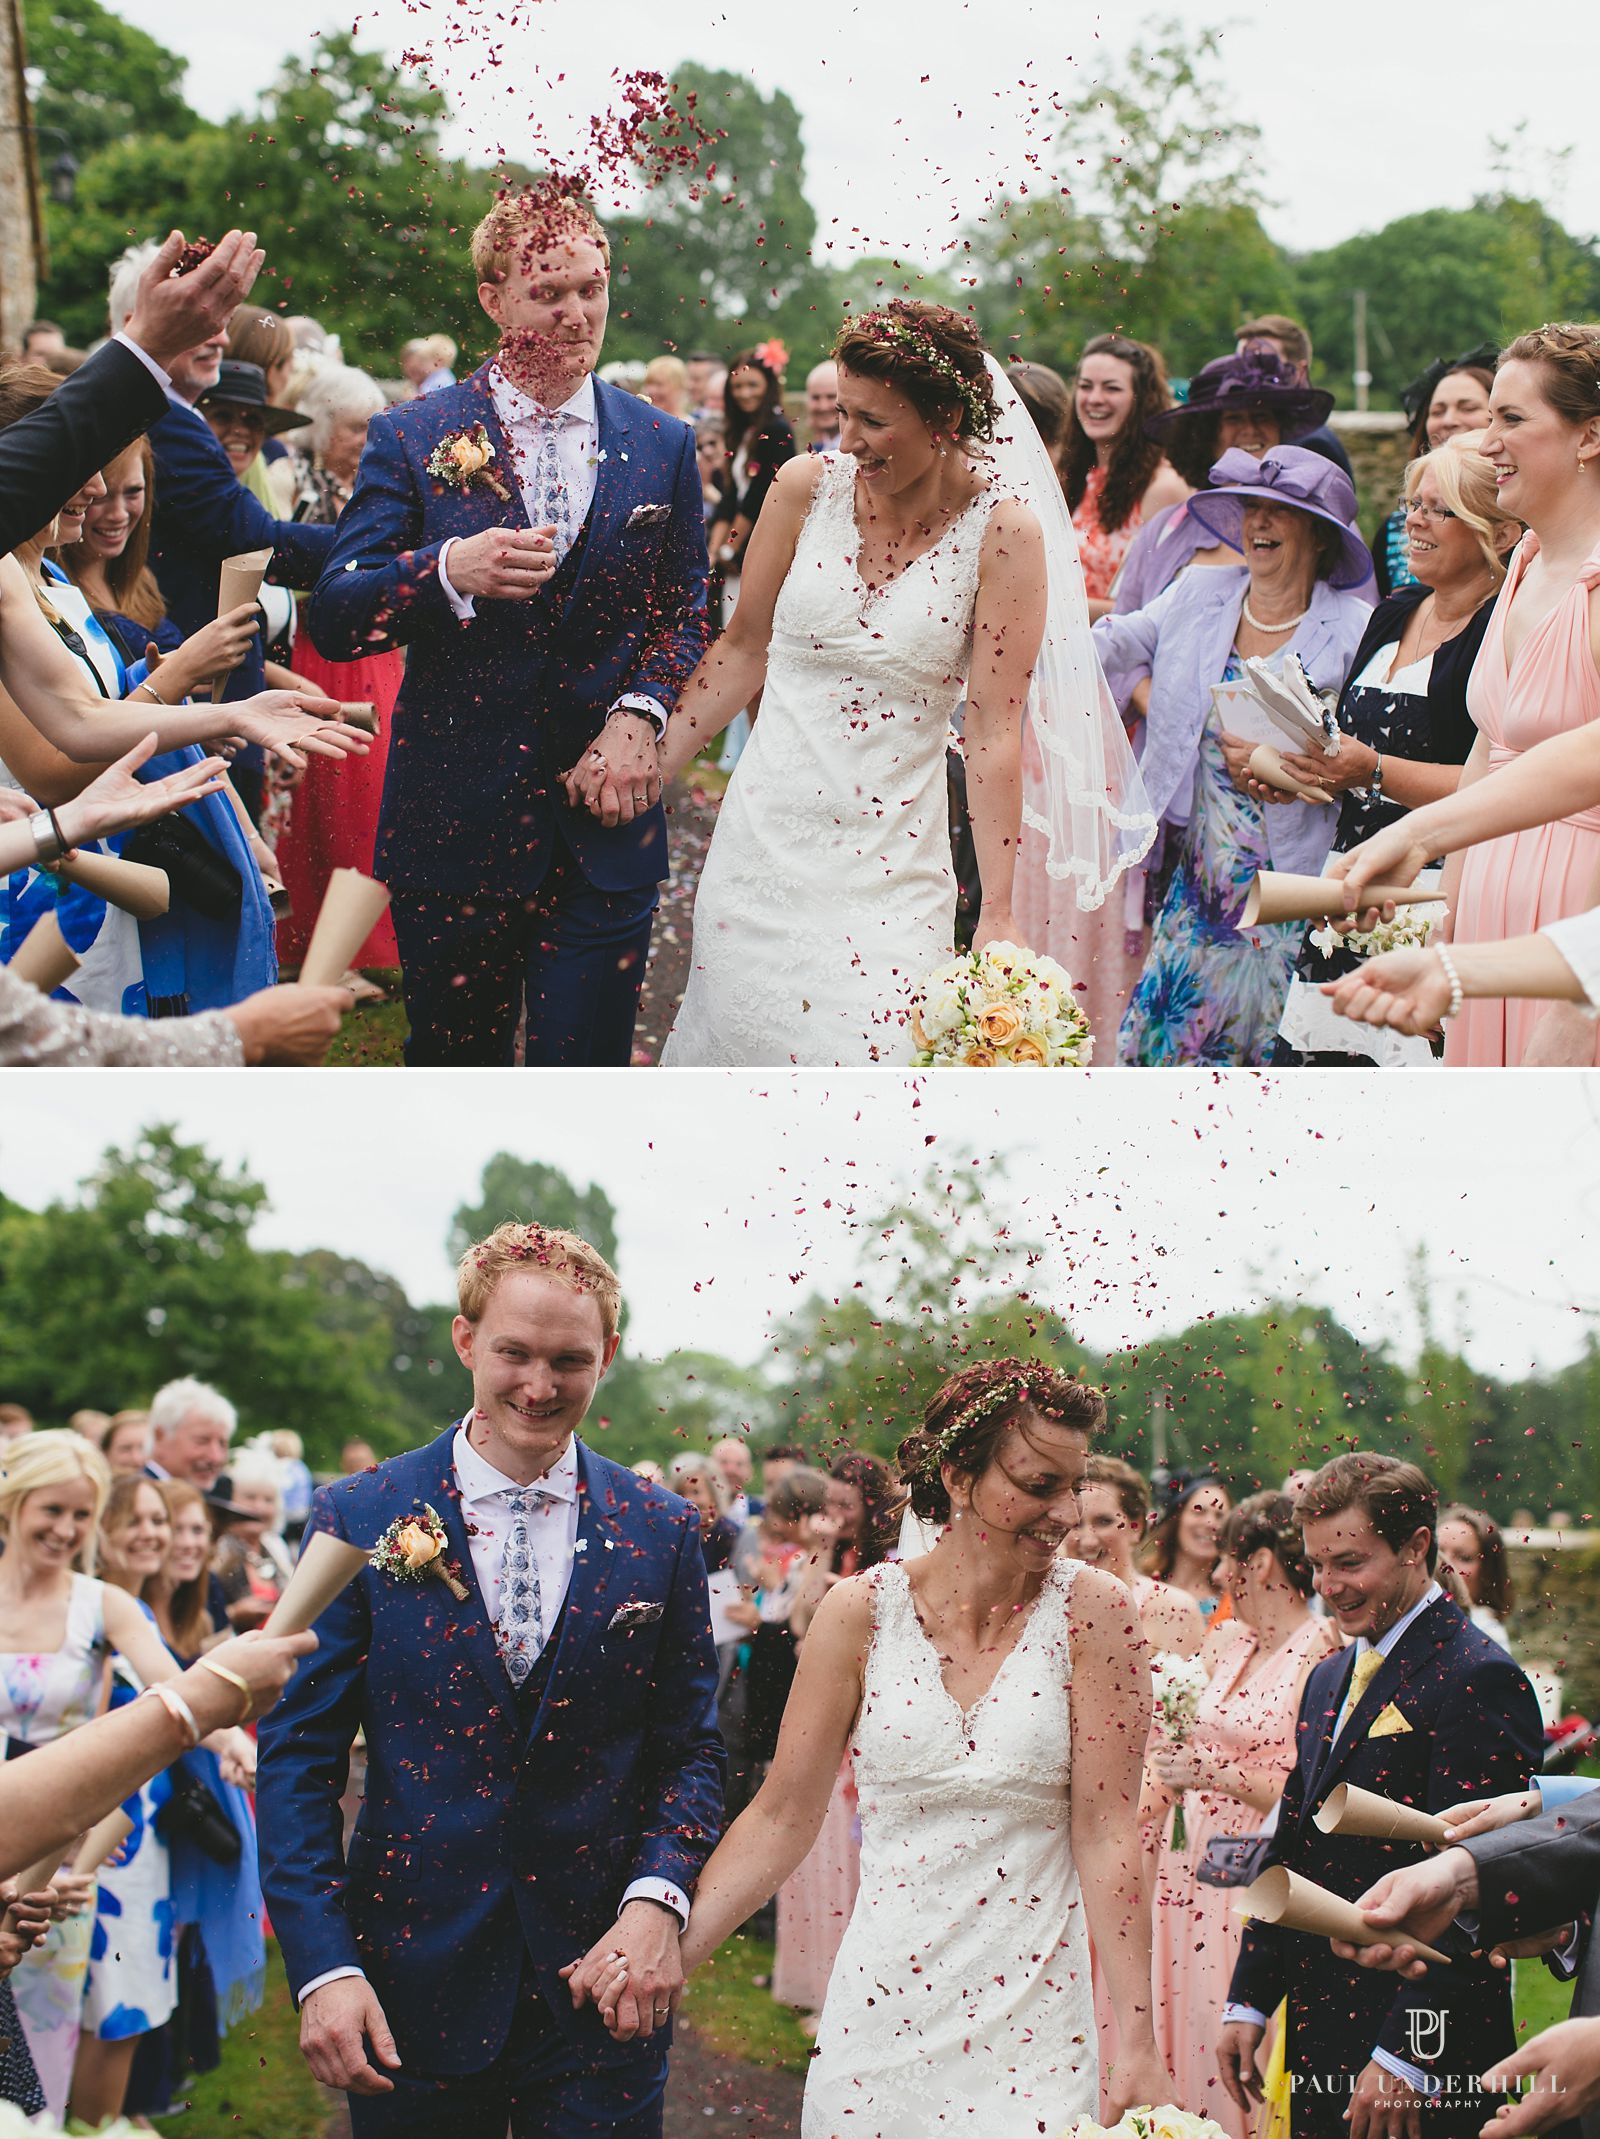 Fun moments at Dorset wedding